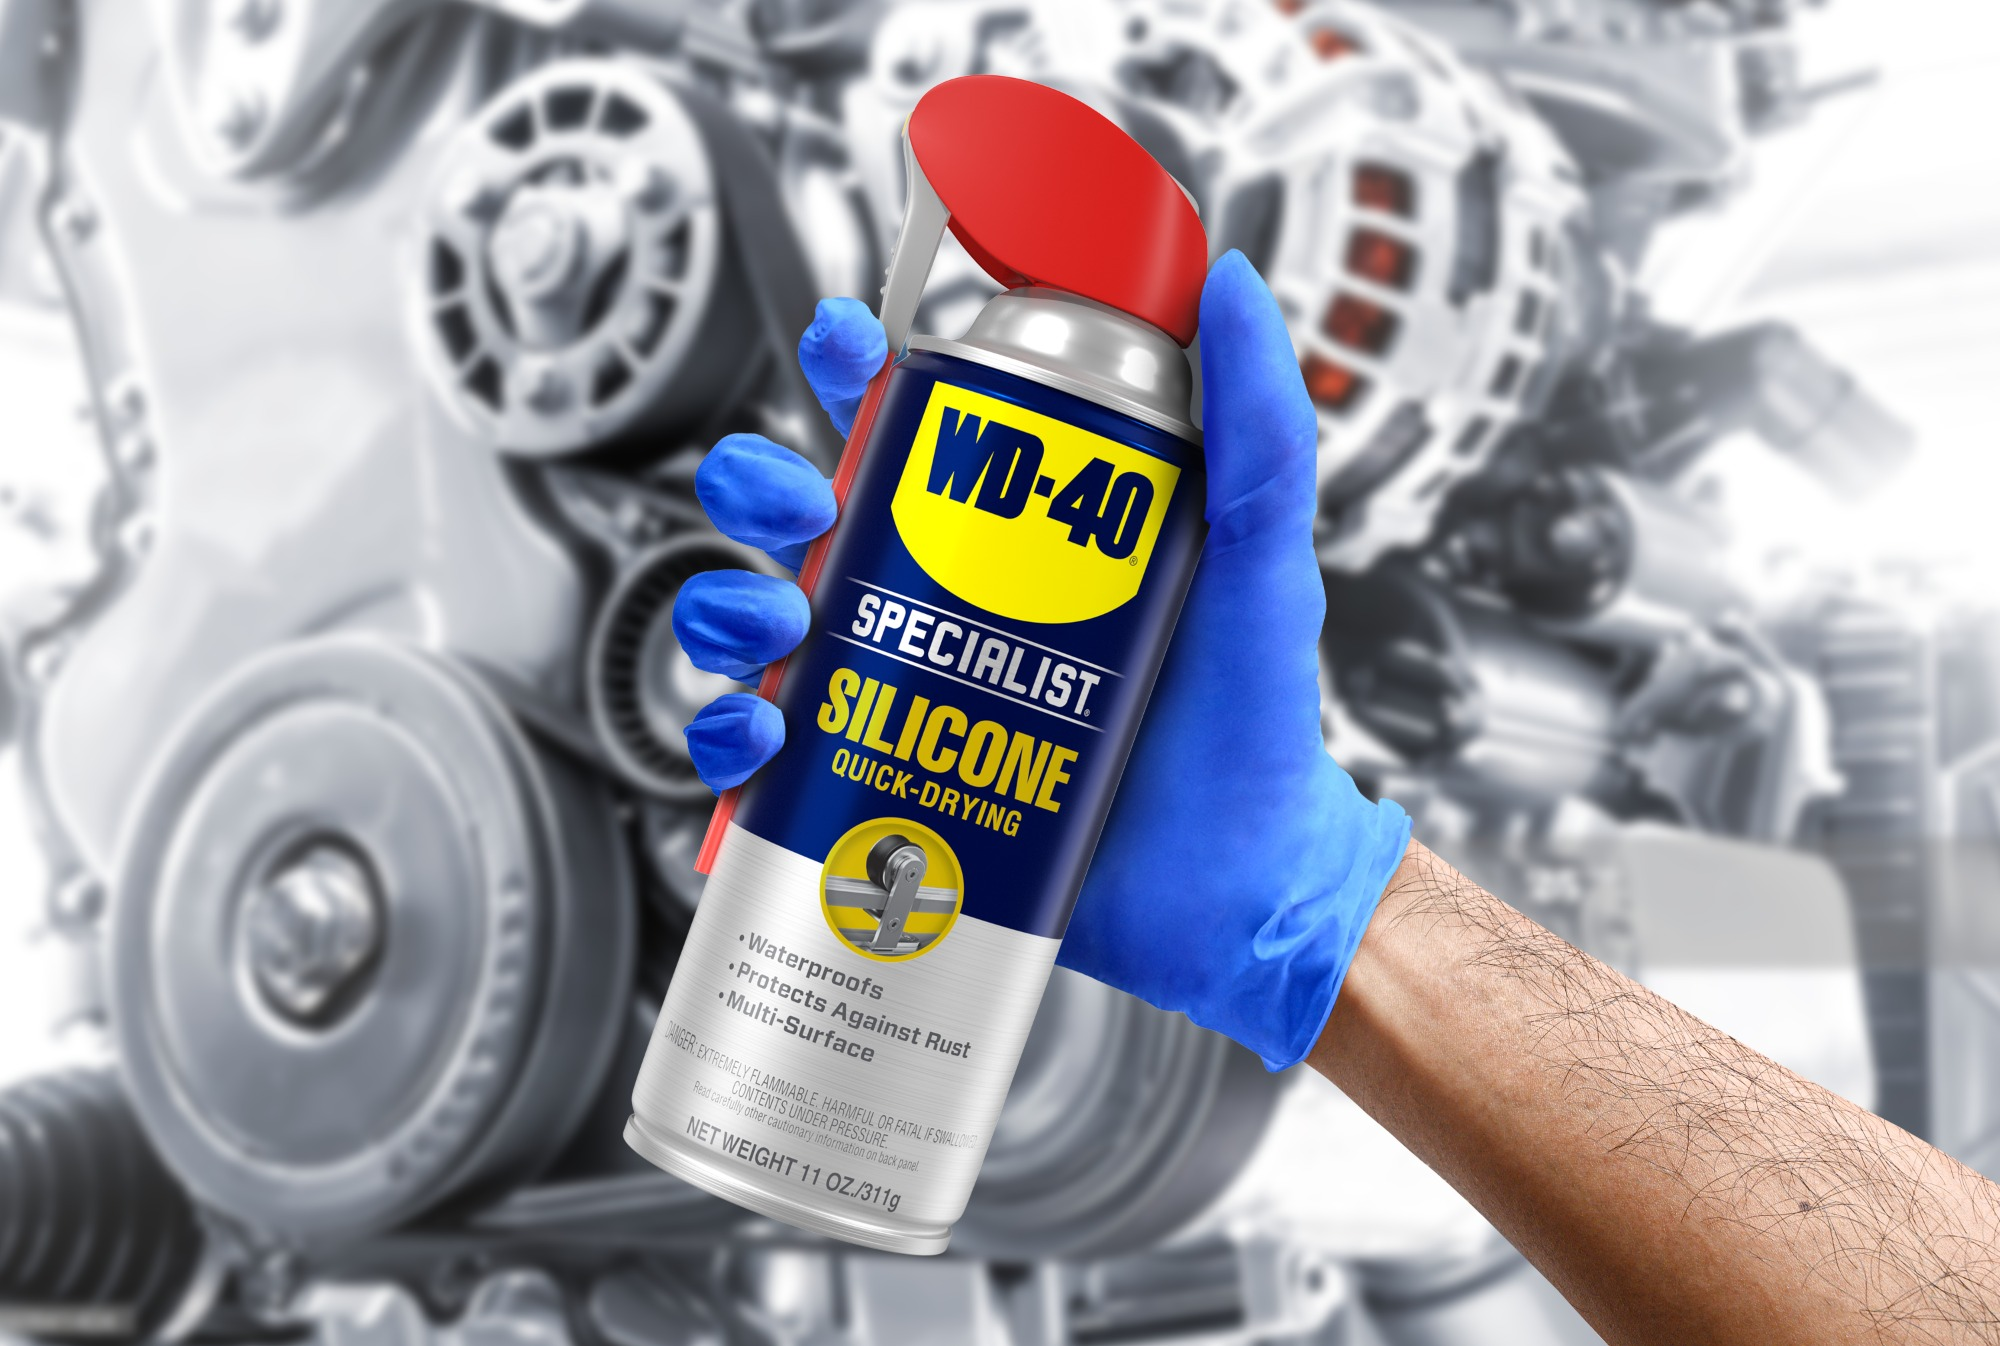 WD-40 Specialist Silicone